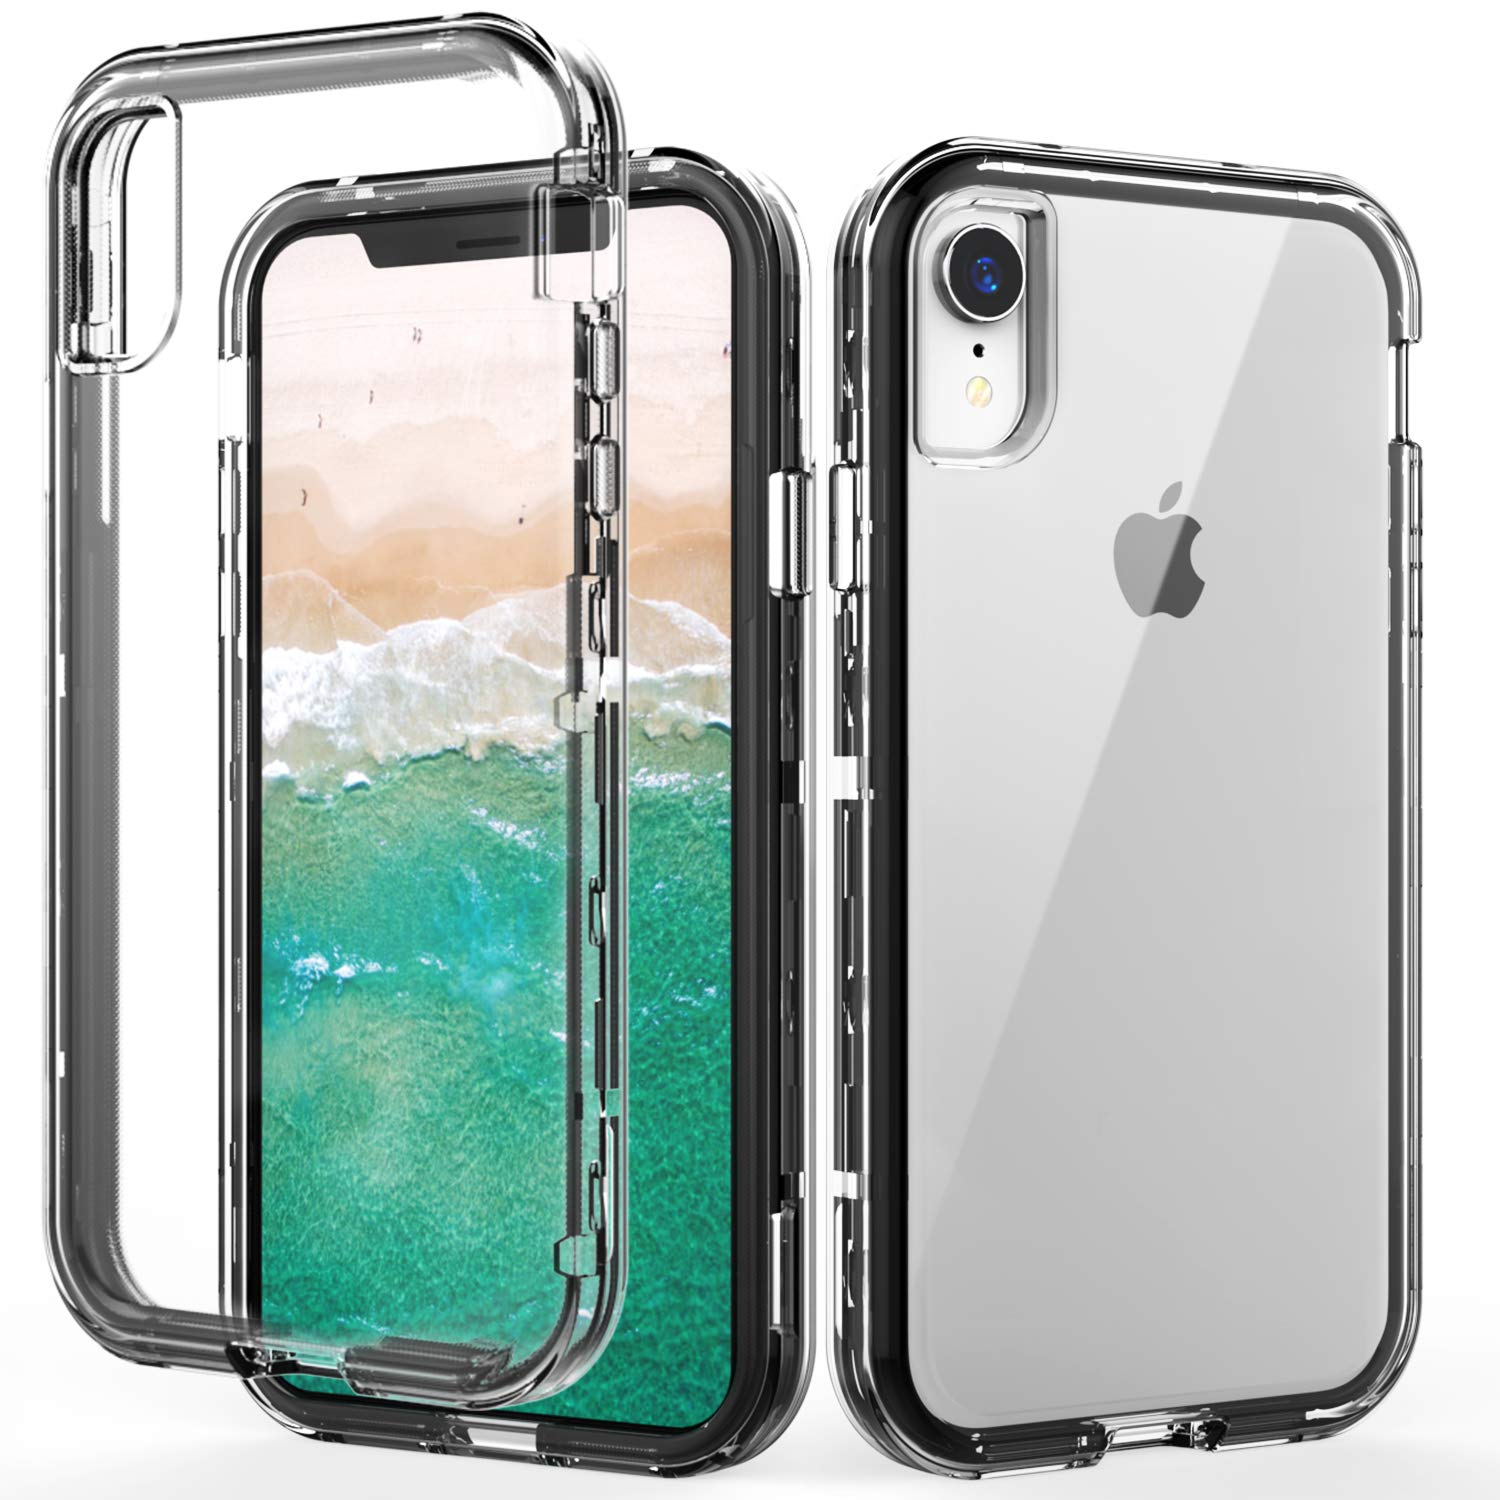 SKYLMW iPhone XR Case,Shockproof Anti-Scratch Three Layer Protection Hard Plastic & Soft TPU Sturdy Shockproof Armor High Impact Resistant Cover Case for iPhone XR 2018(6.1 inch),Clear